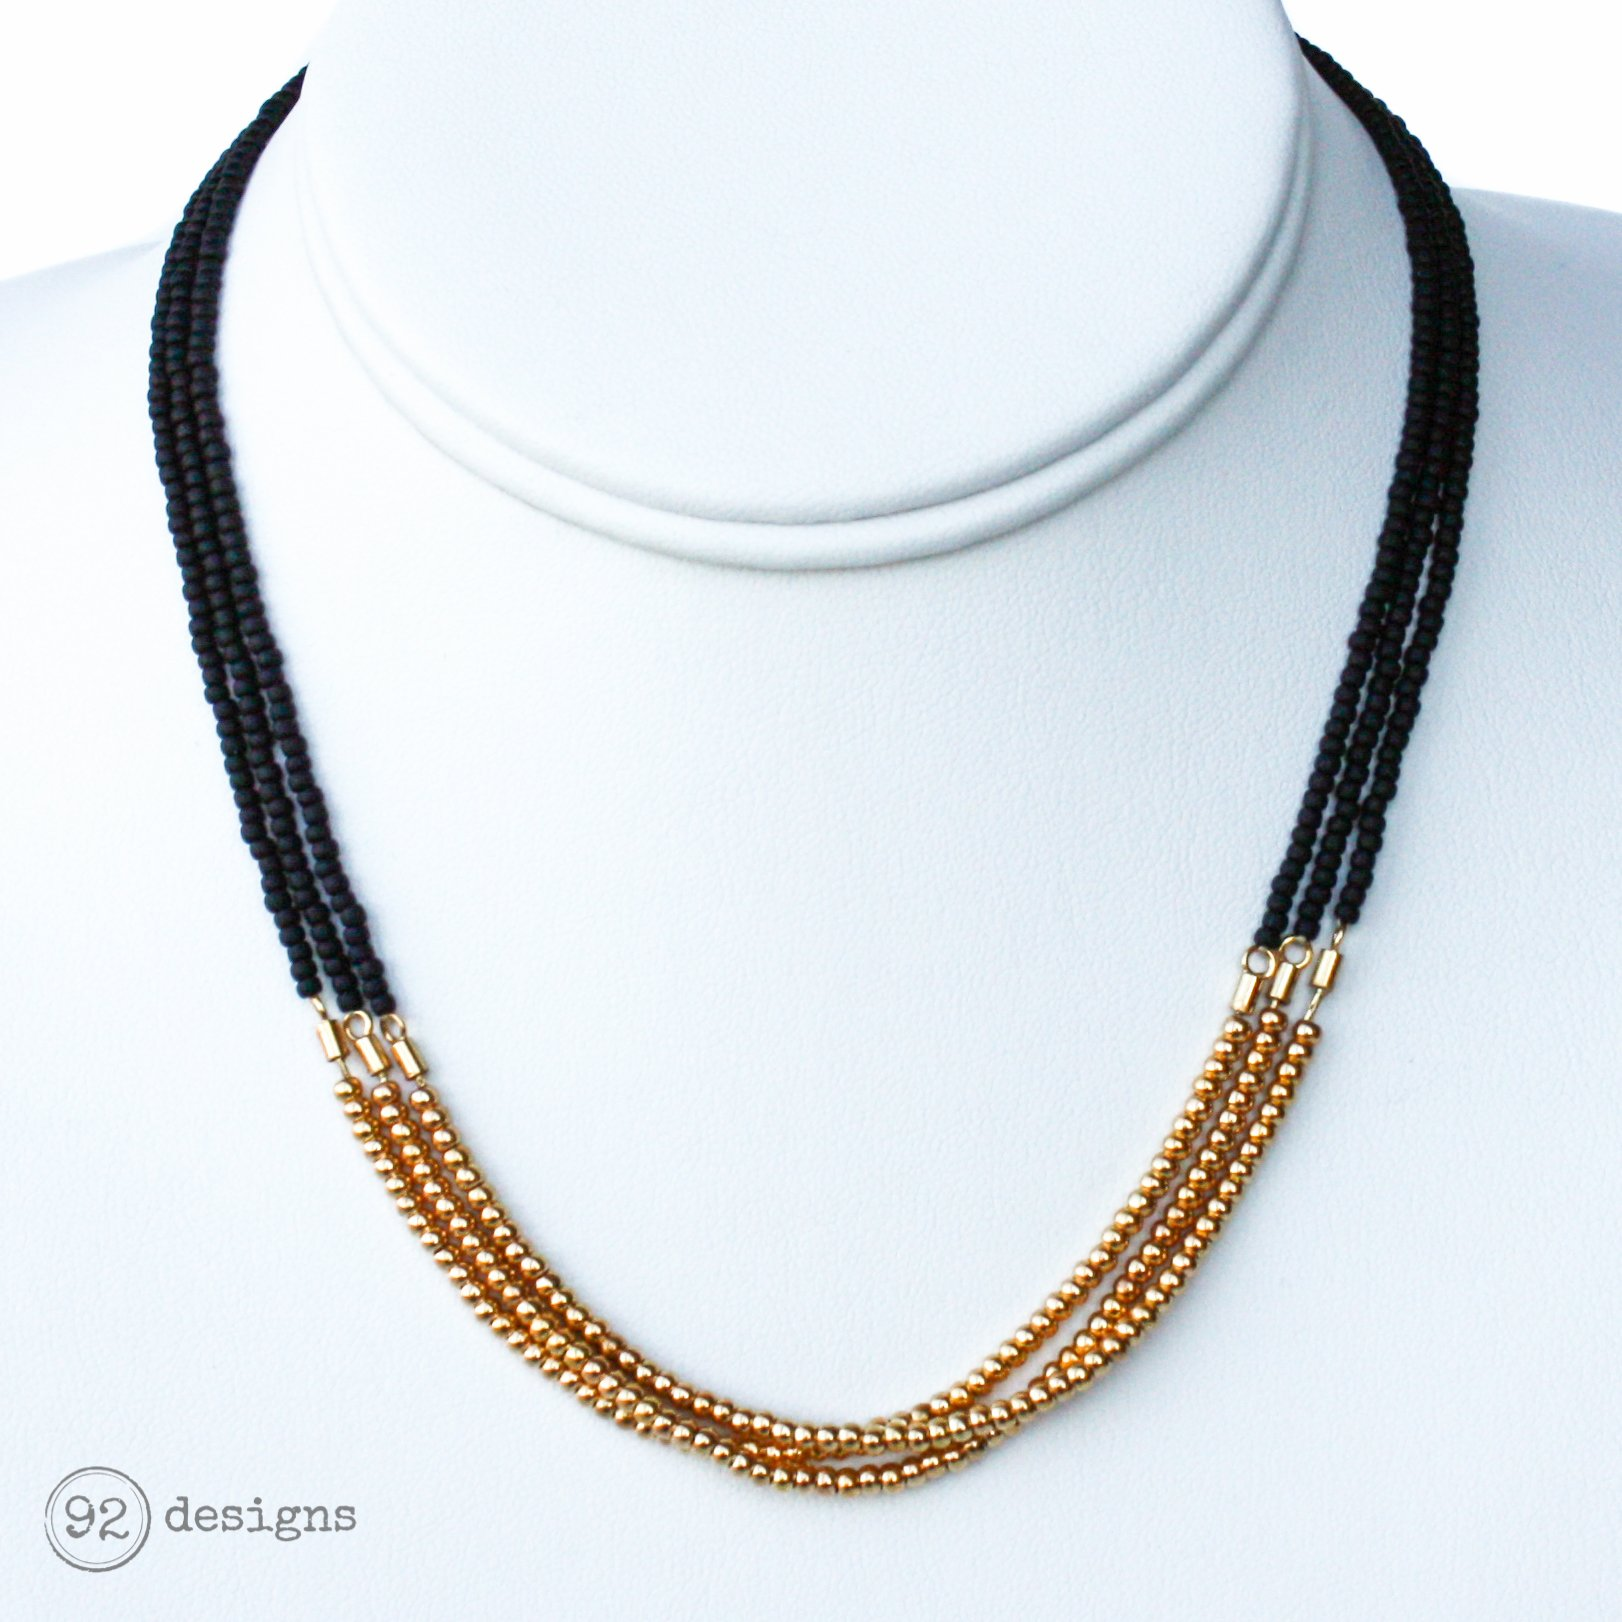 3 strand gold necklace 92 designs handcrafted modern